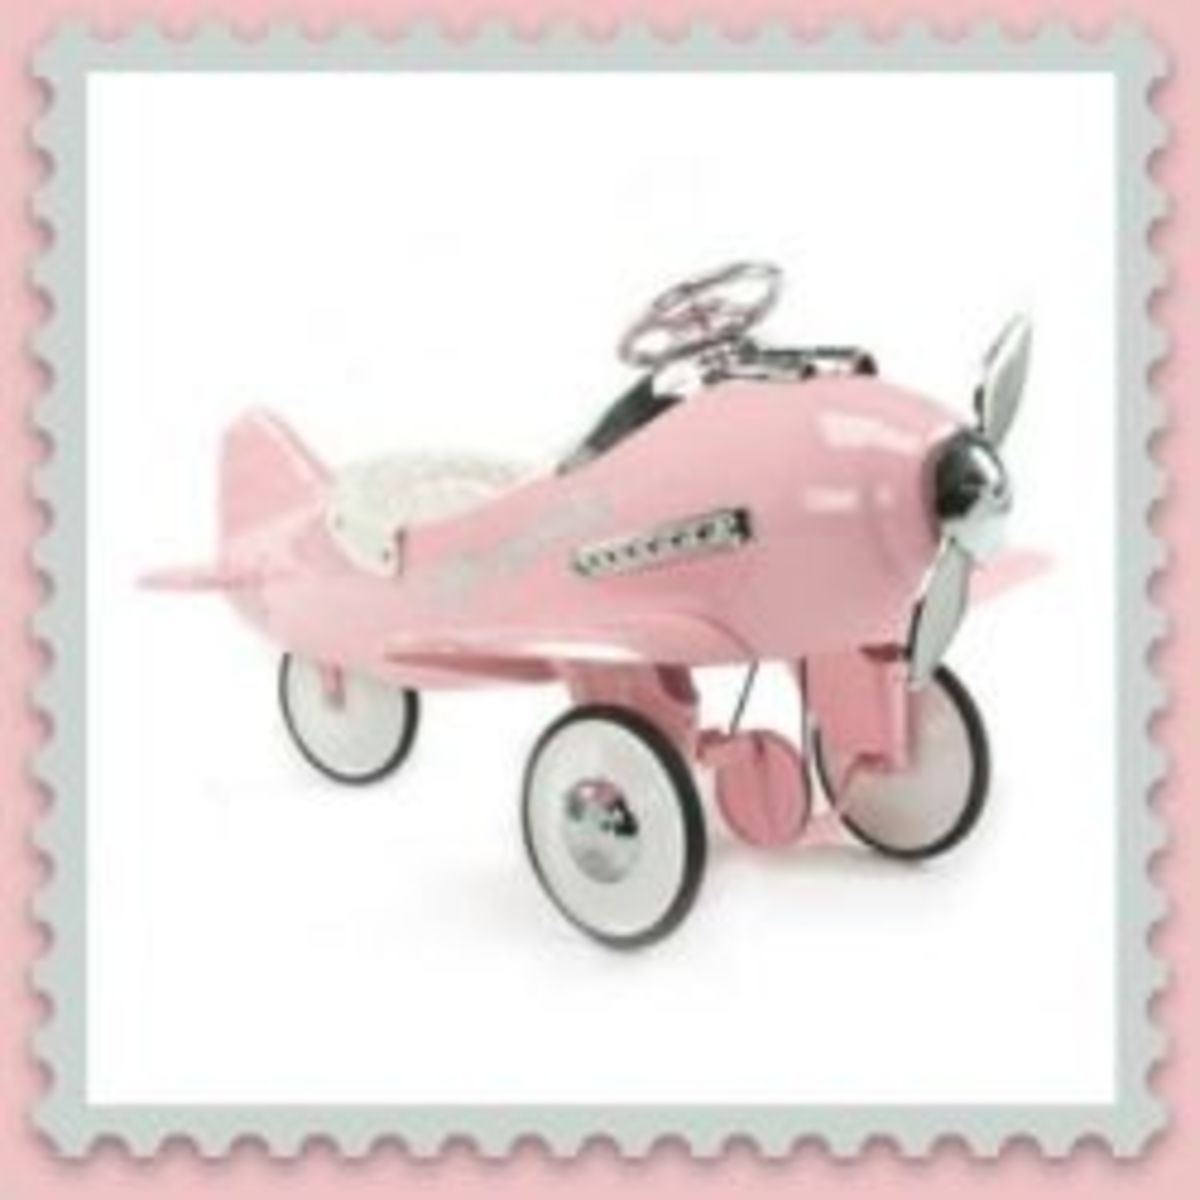 Airflow Collectible Pedal Airplane